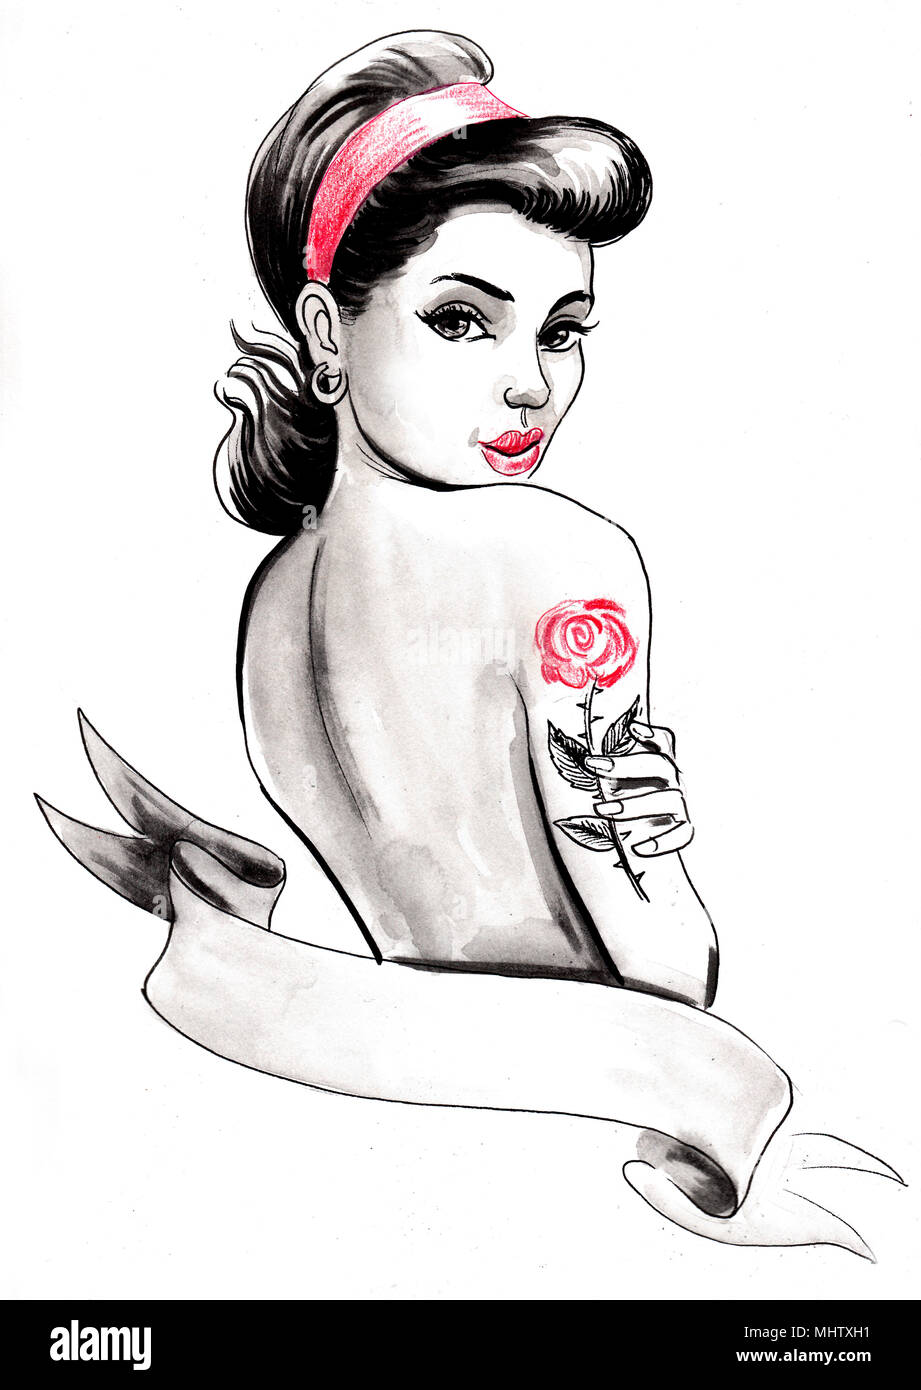 Favoriete Pretty pin-up woman with a rose tattoo on her shoulder Stock Photo @GF08